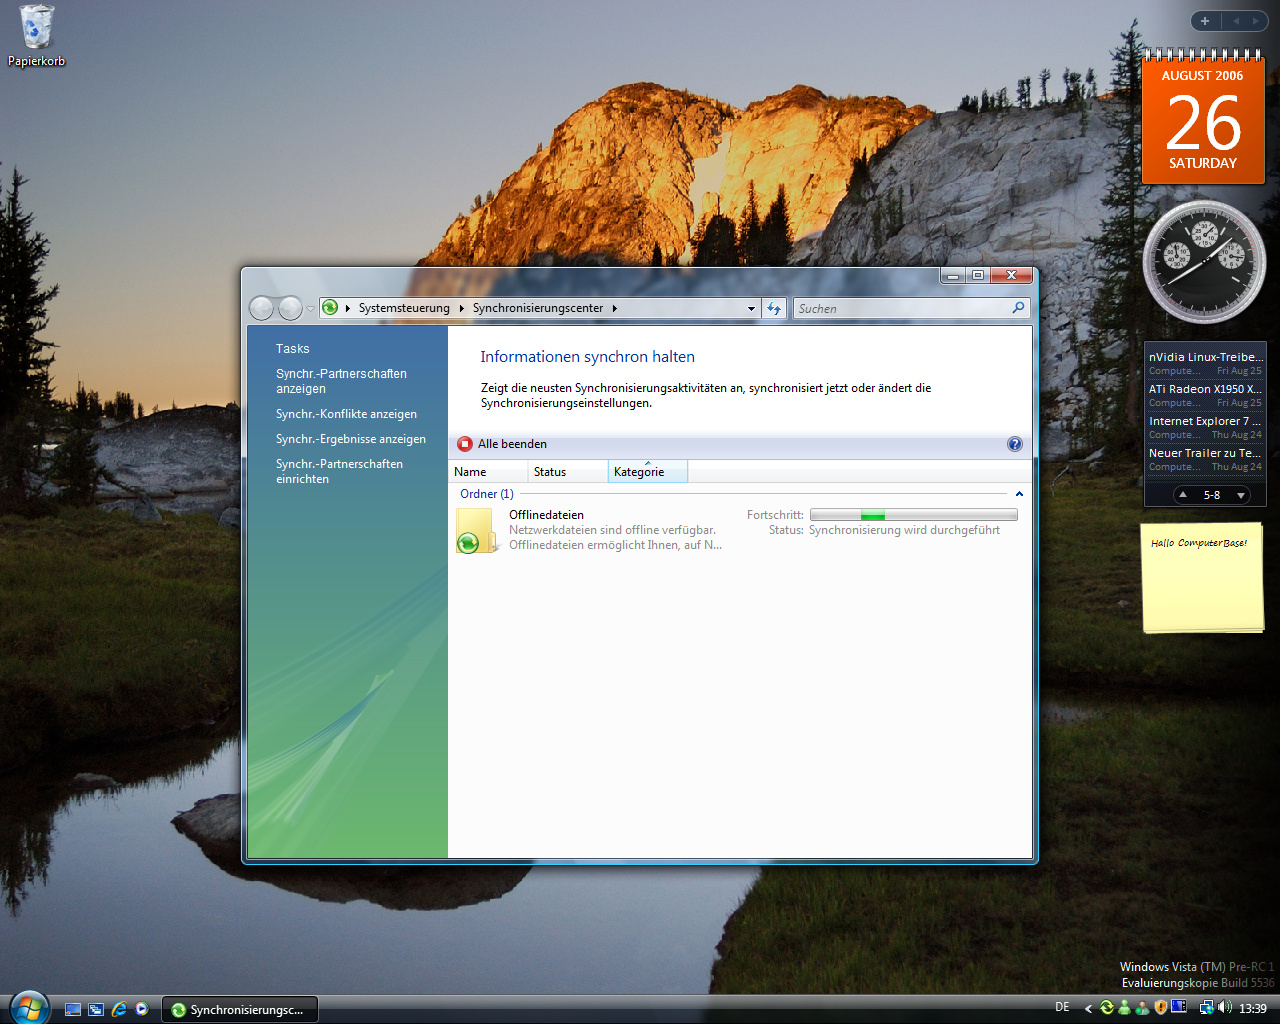 Windows Vista Build 5536 - Synchronistationscenter